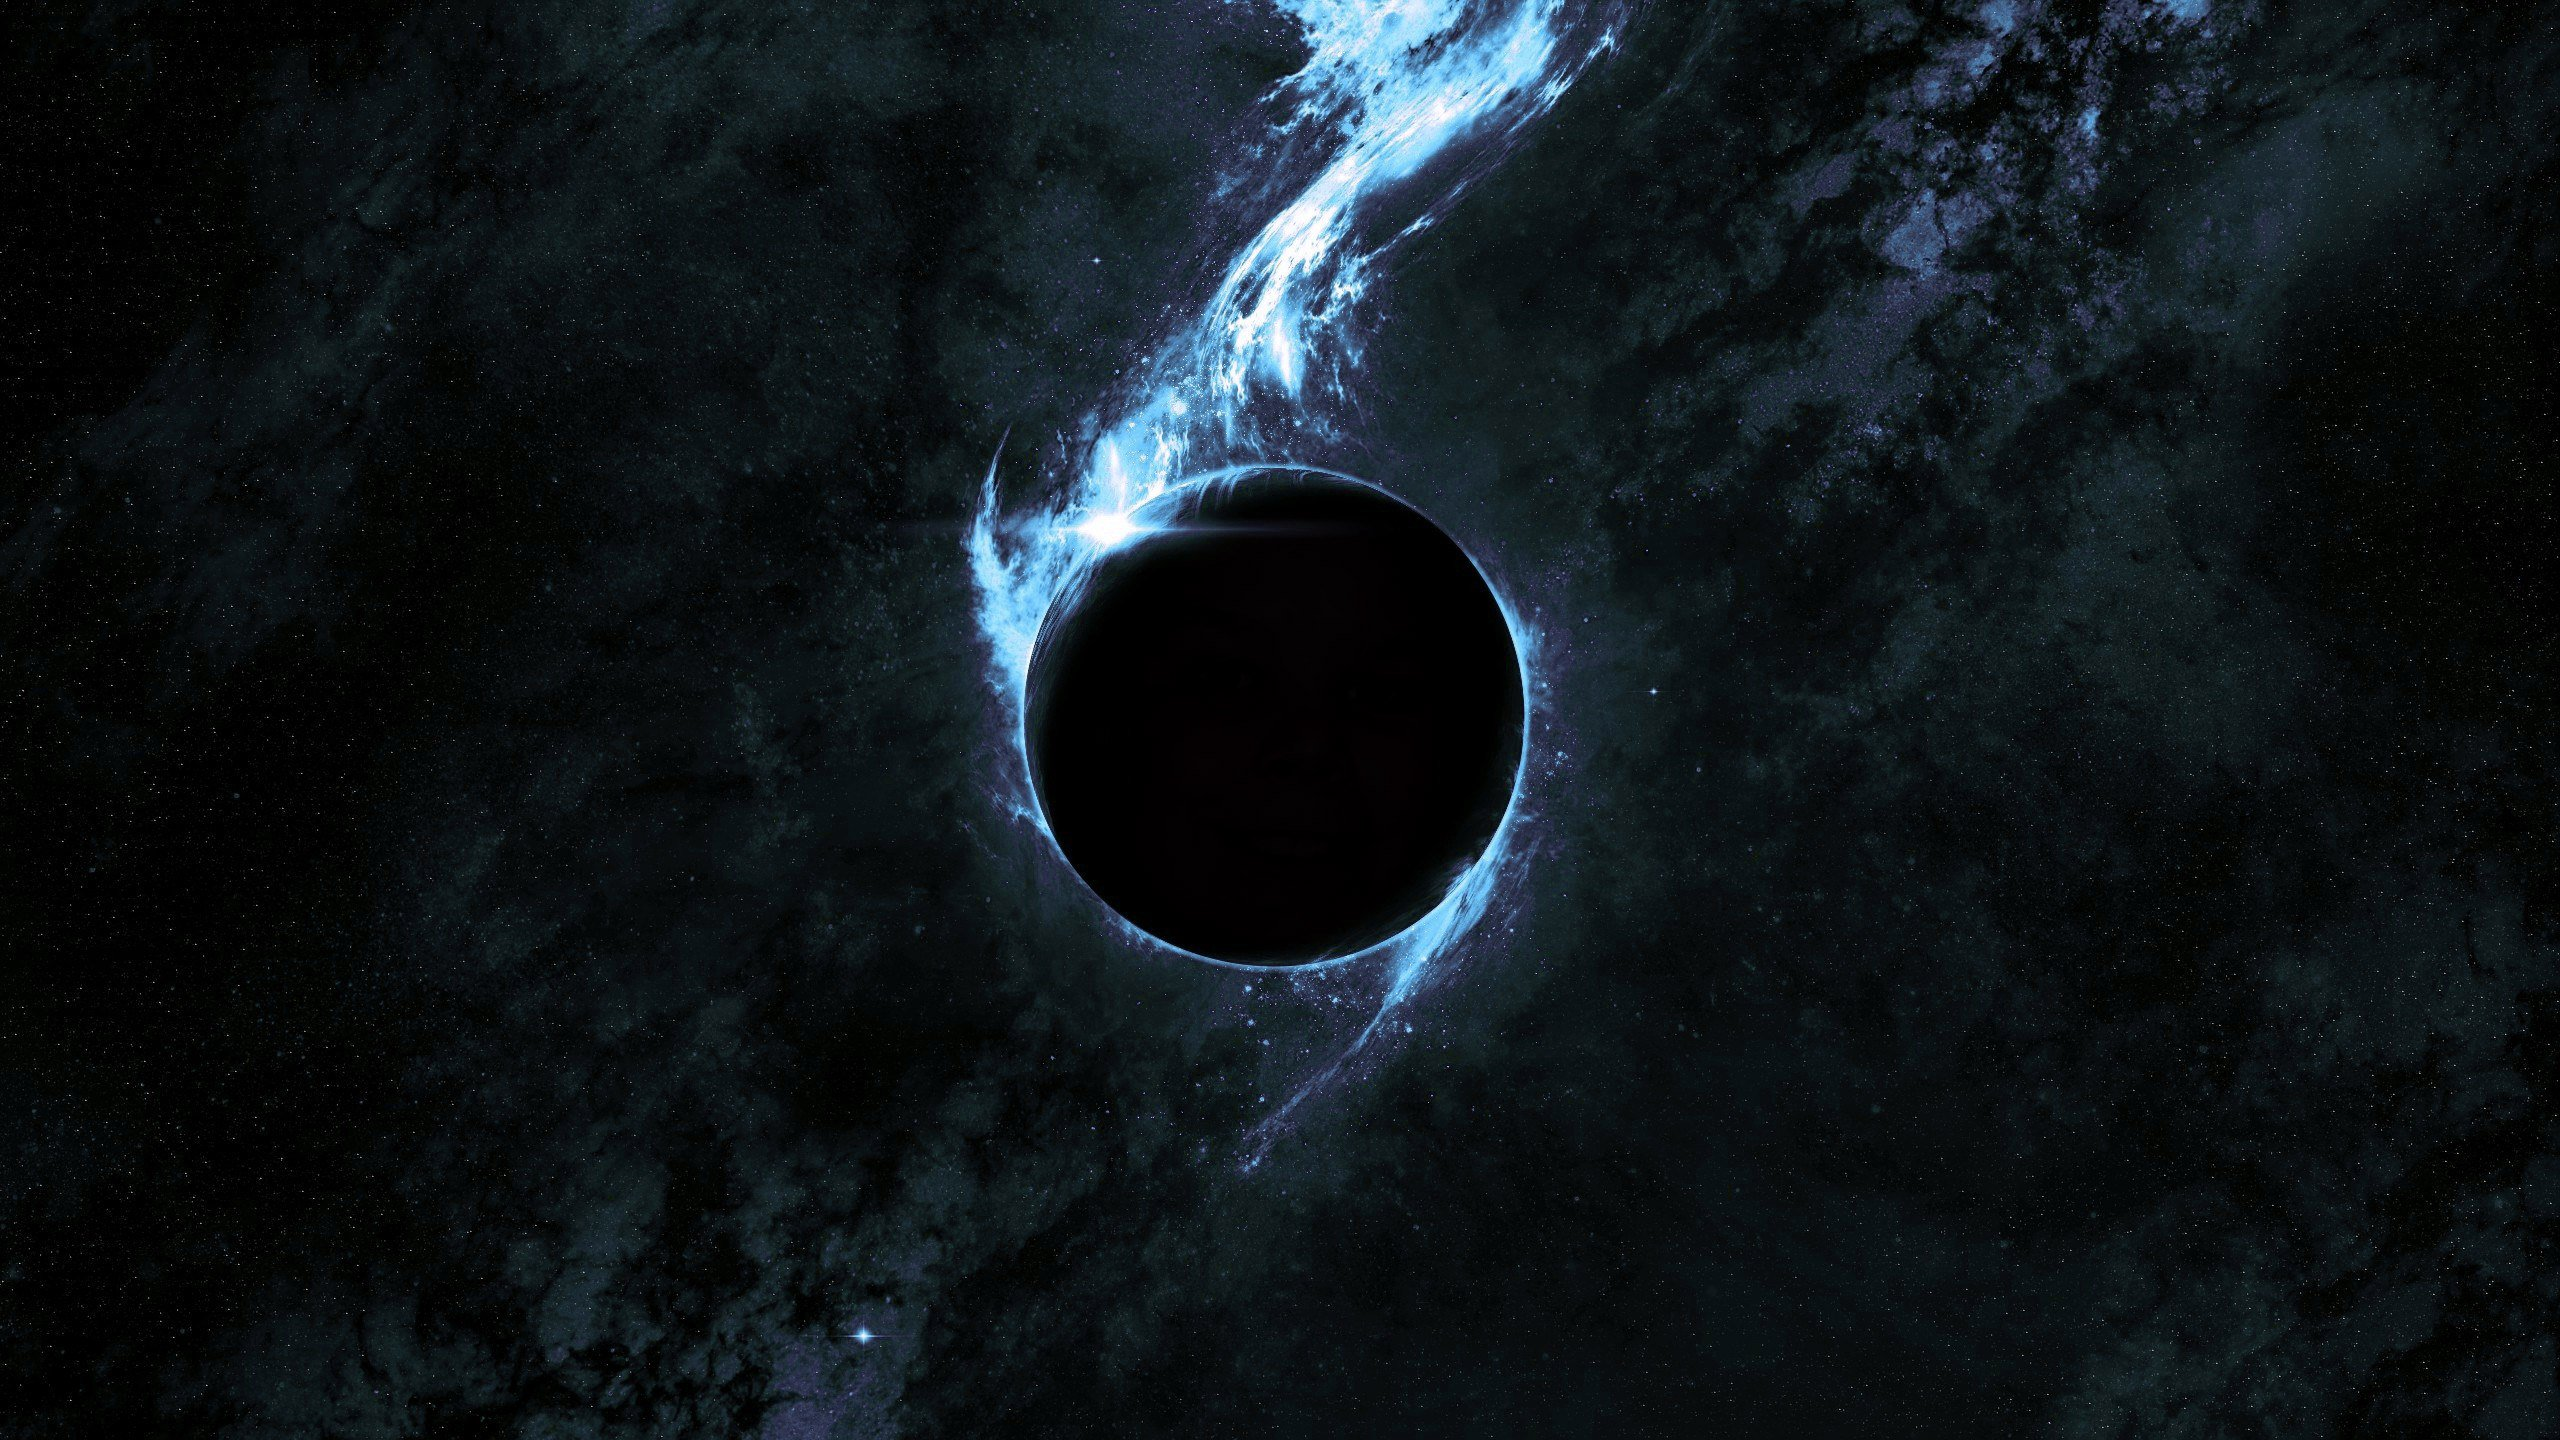 Eclipse 4k Wallpapers For Your Desktop Or Mobile Screen Free And